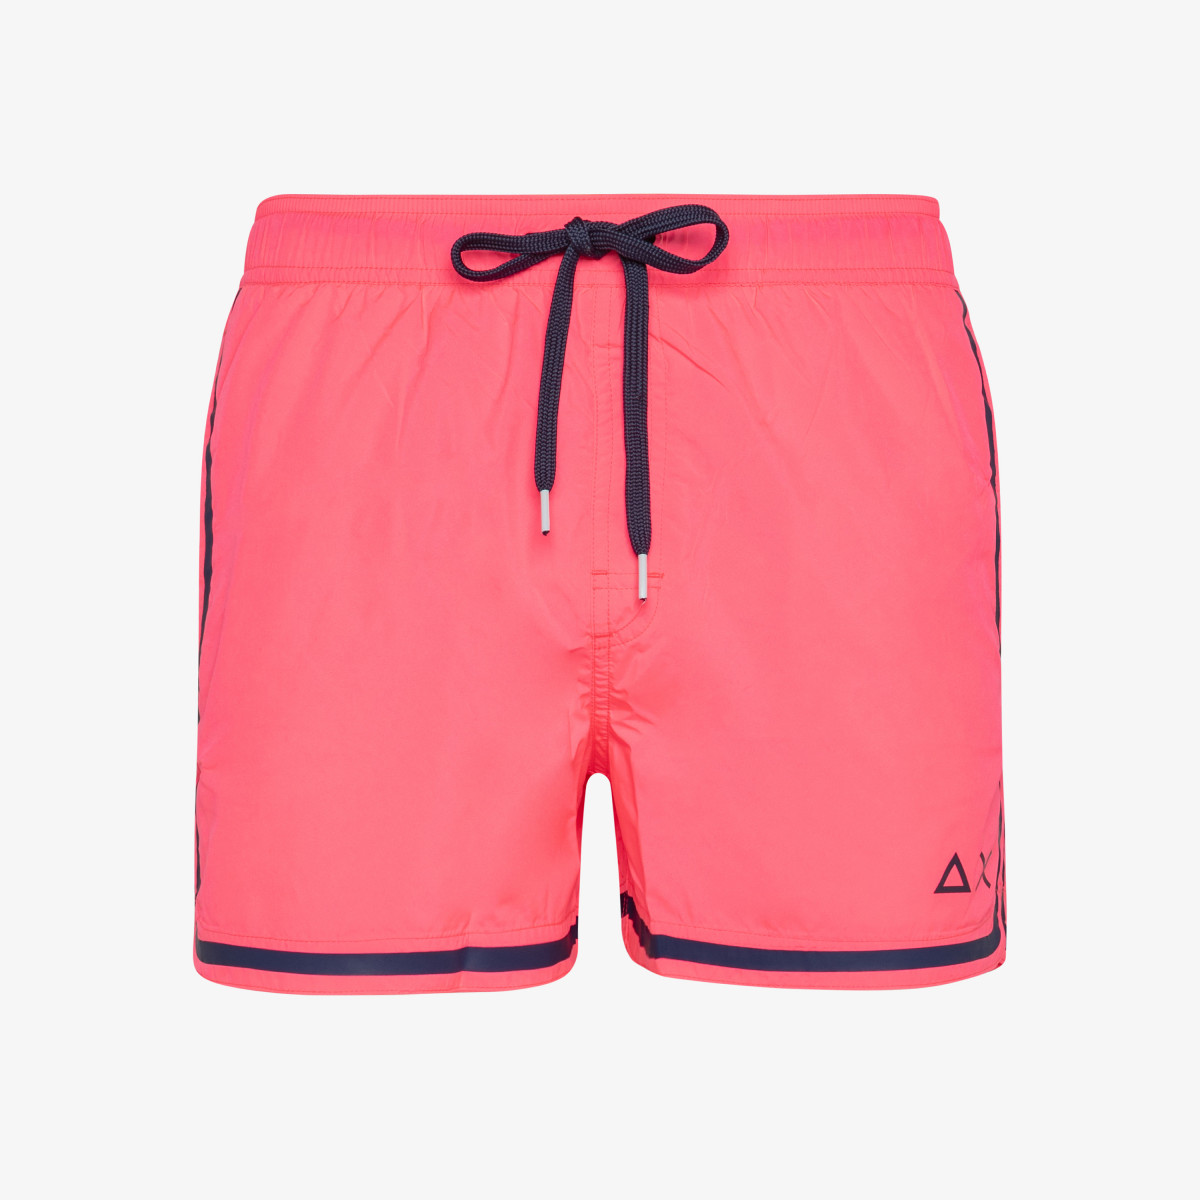 SWIM PANT SIDE BAND WHITE FUXIA FLUO